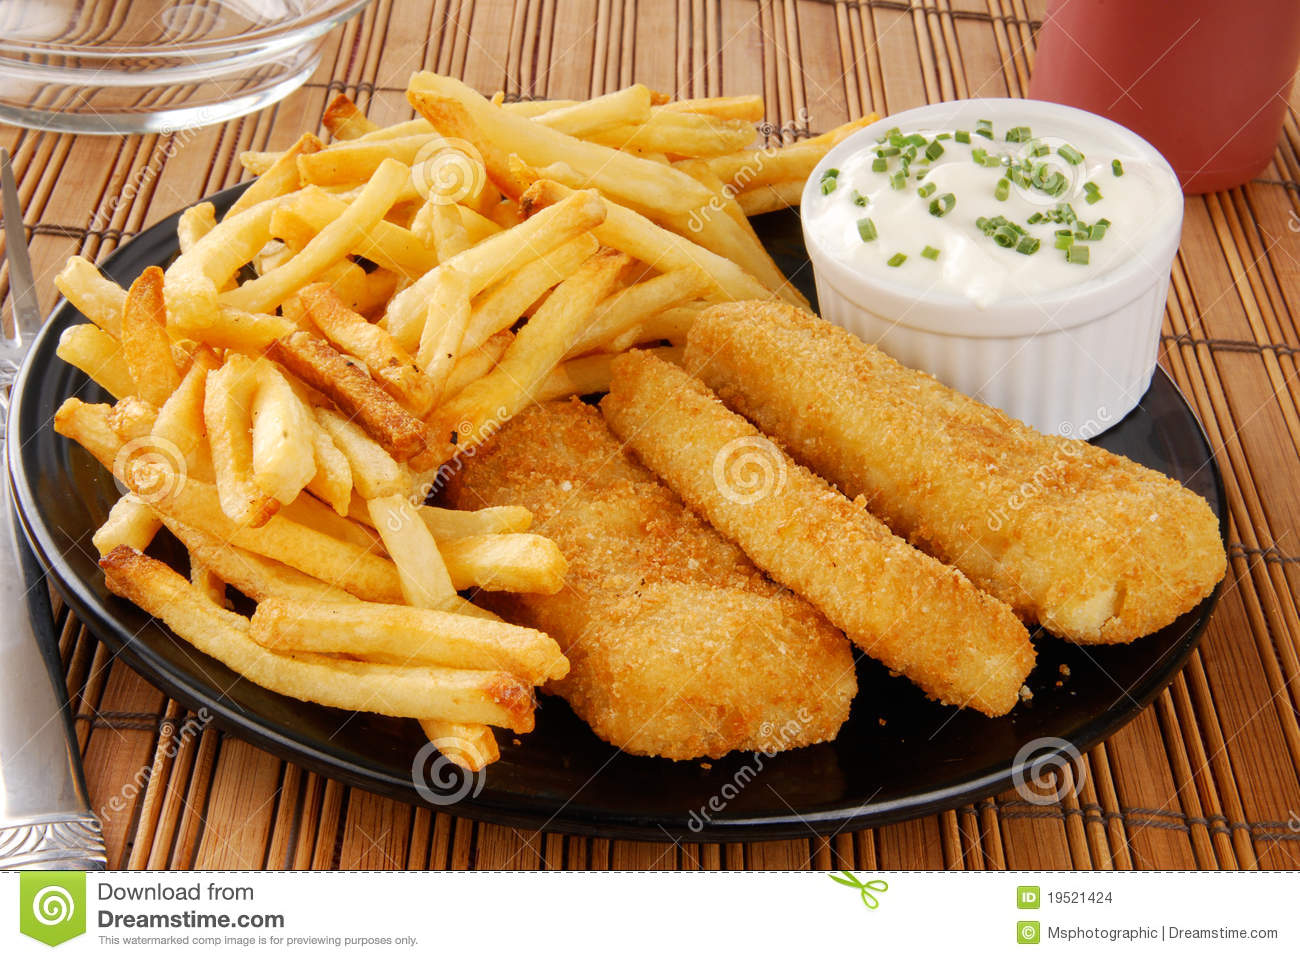 Fish and chips stock photo. Image of battered, breaded - 19521424